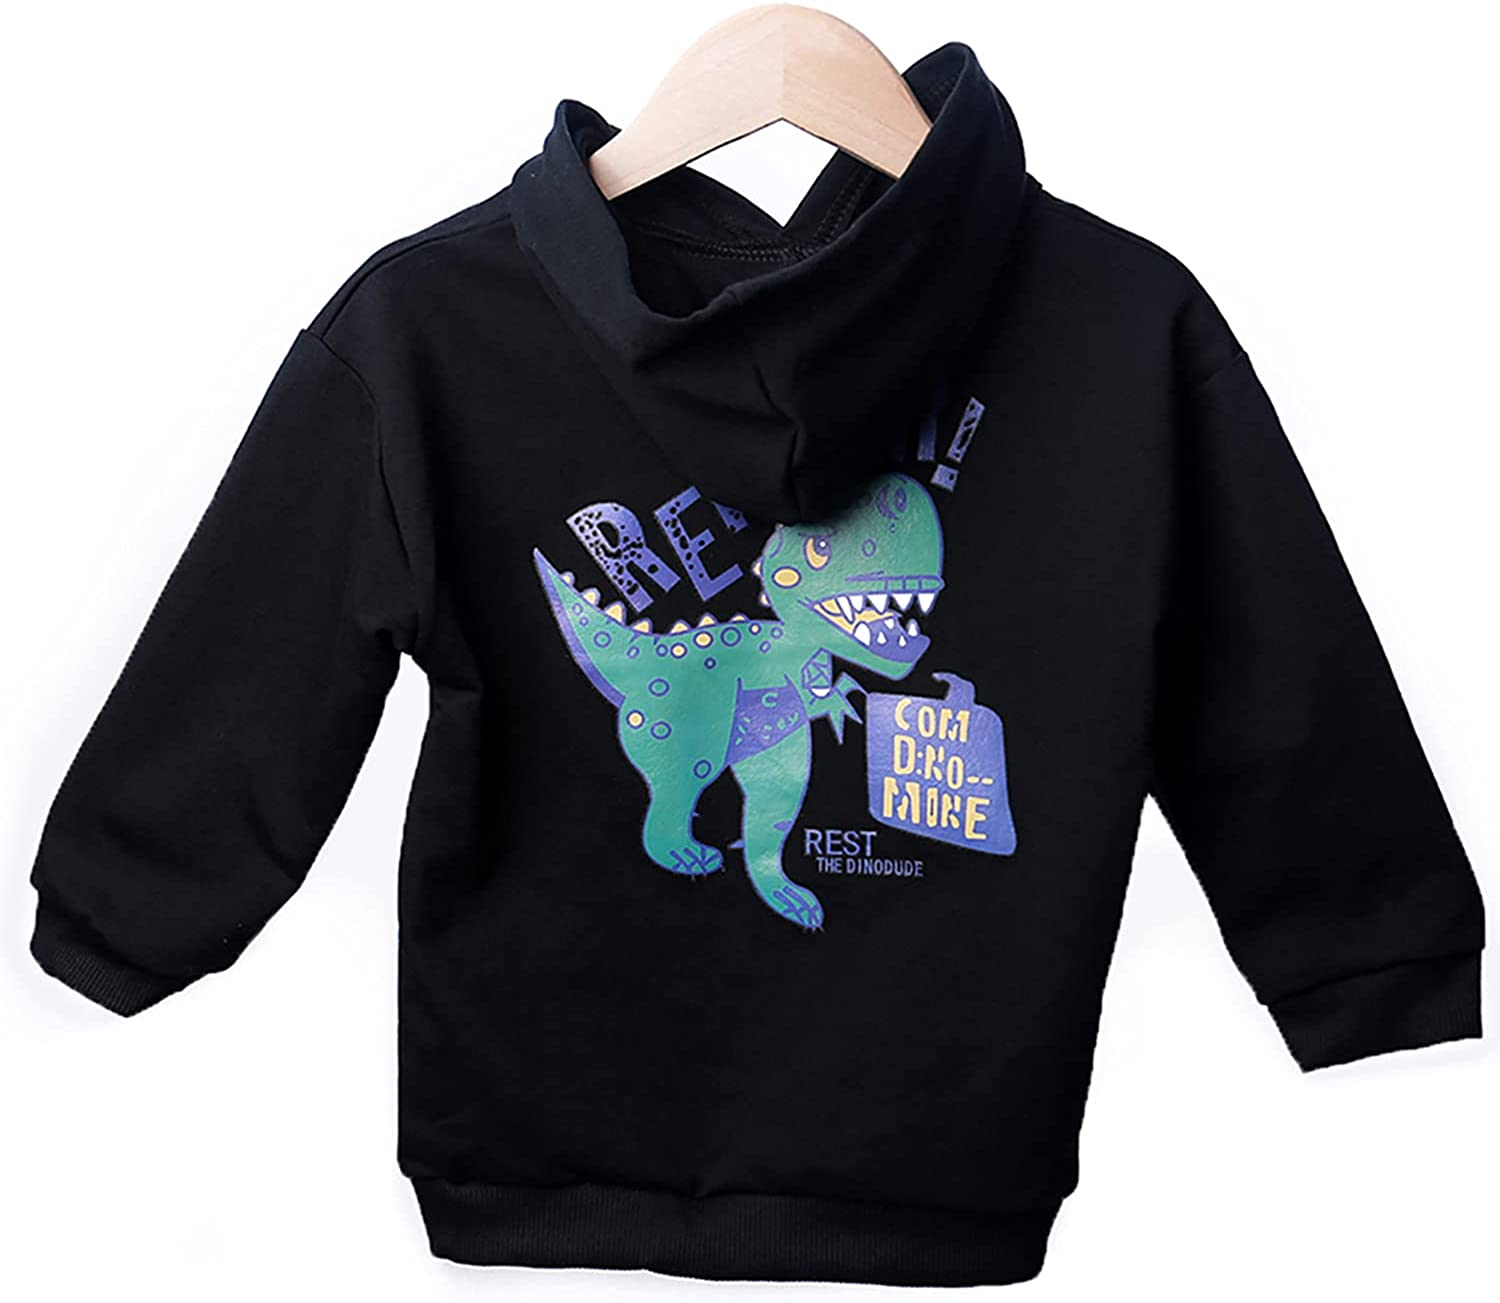 CITYGATE Toddler Boys Girls Hoddie White Clothes Dinosaur Casual Long Sleeve Outfits for Kids 1-6T